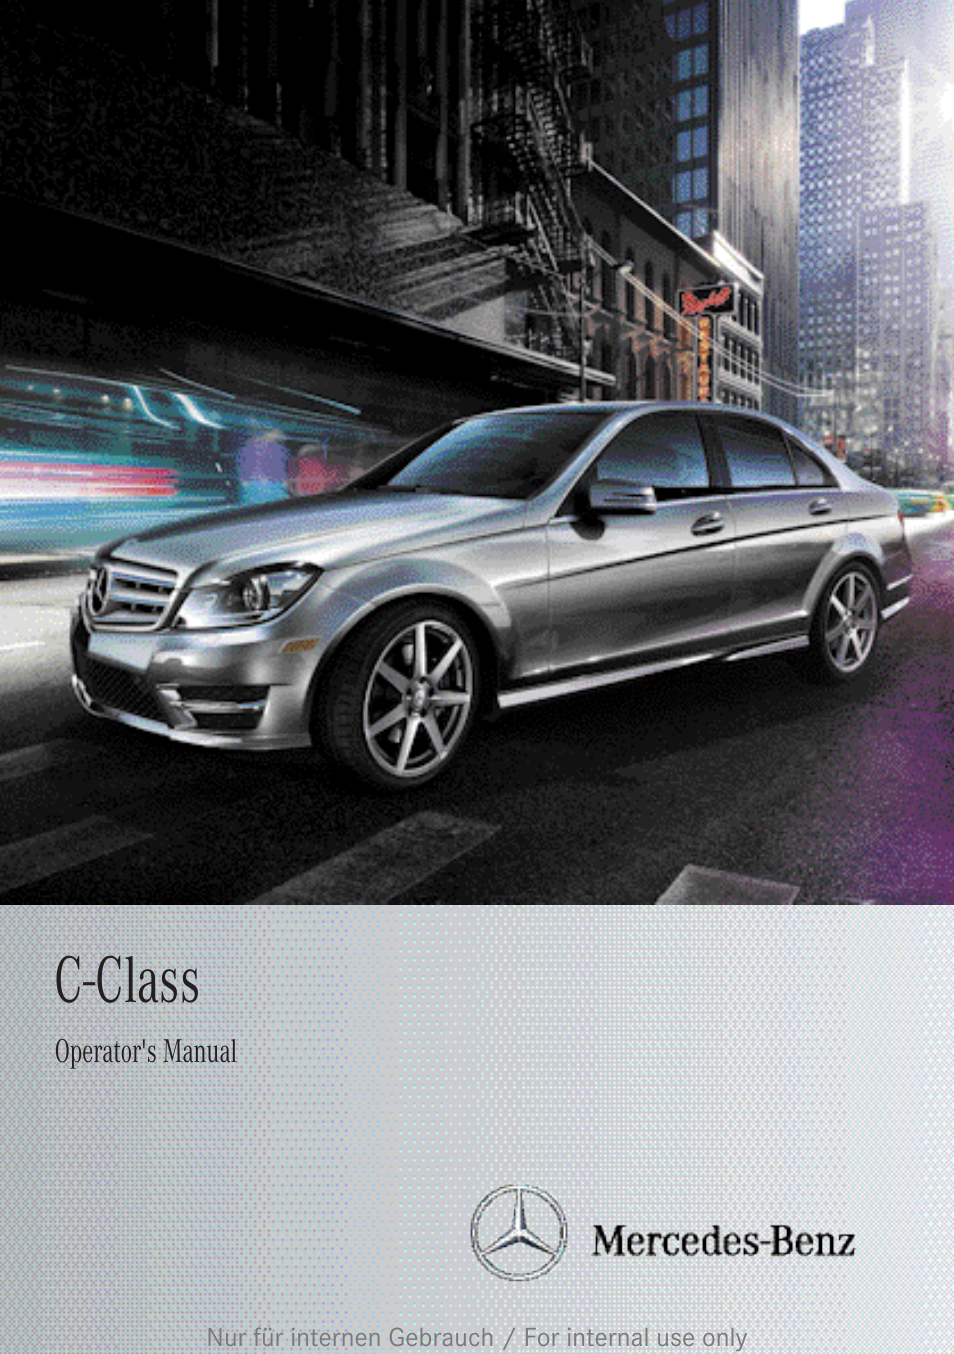 Mercedes benz 2013 c class sedan user manual 360 pages for 2013 mercedes benz c class sedan